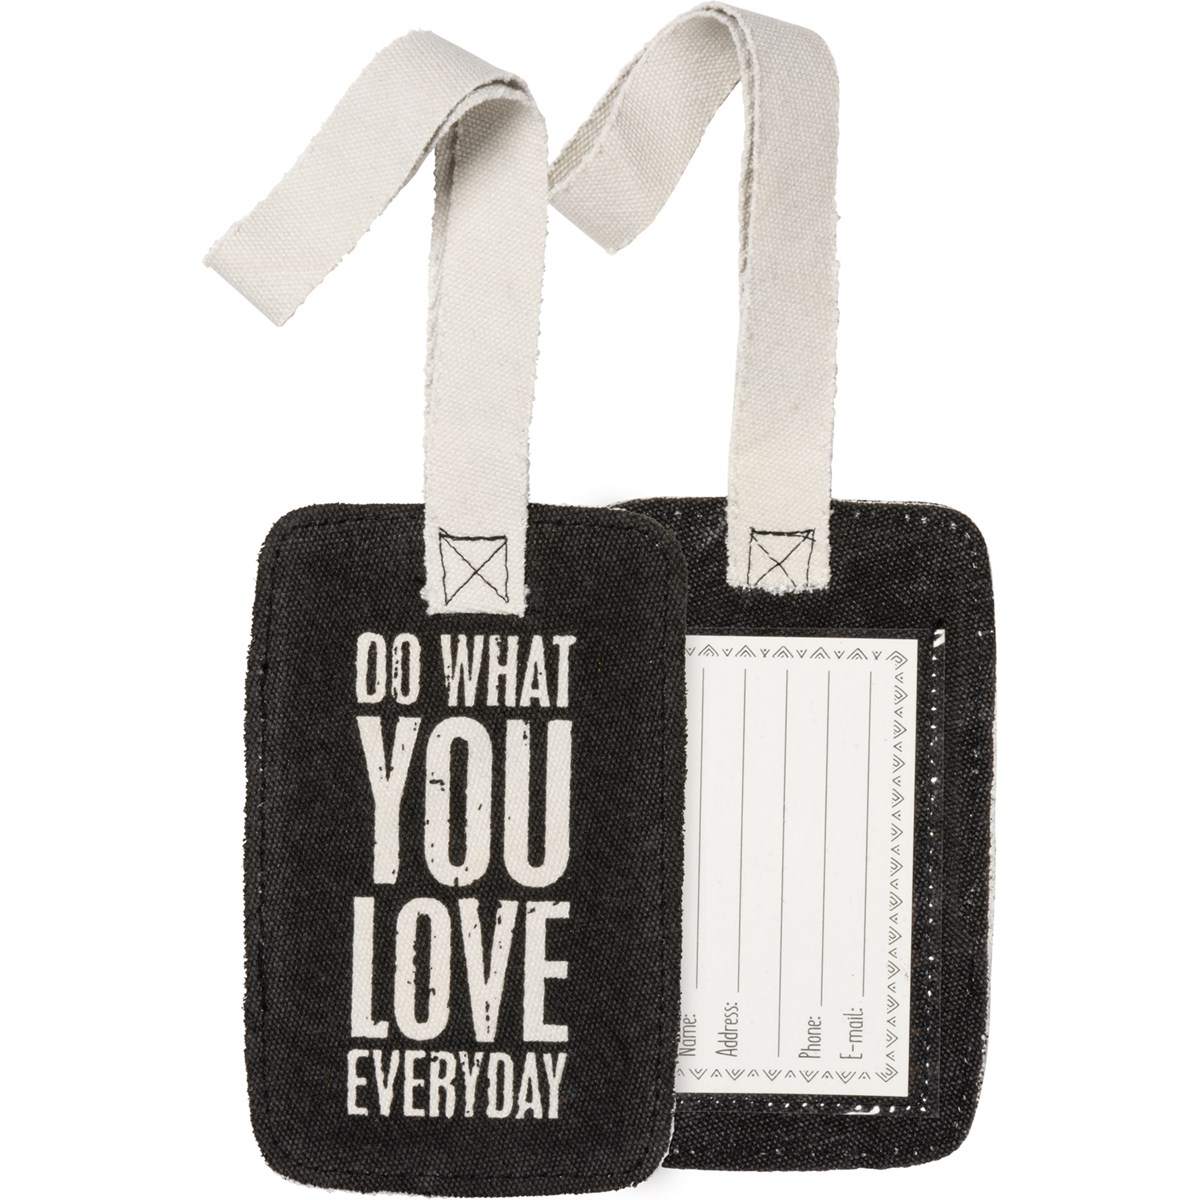 "Luggage Tag - Do What You Love Everyday - 3.25"" x 5.25"" - Canvas, Plastic"